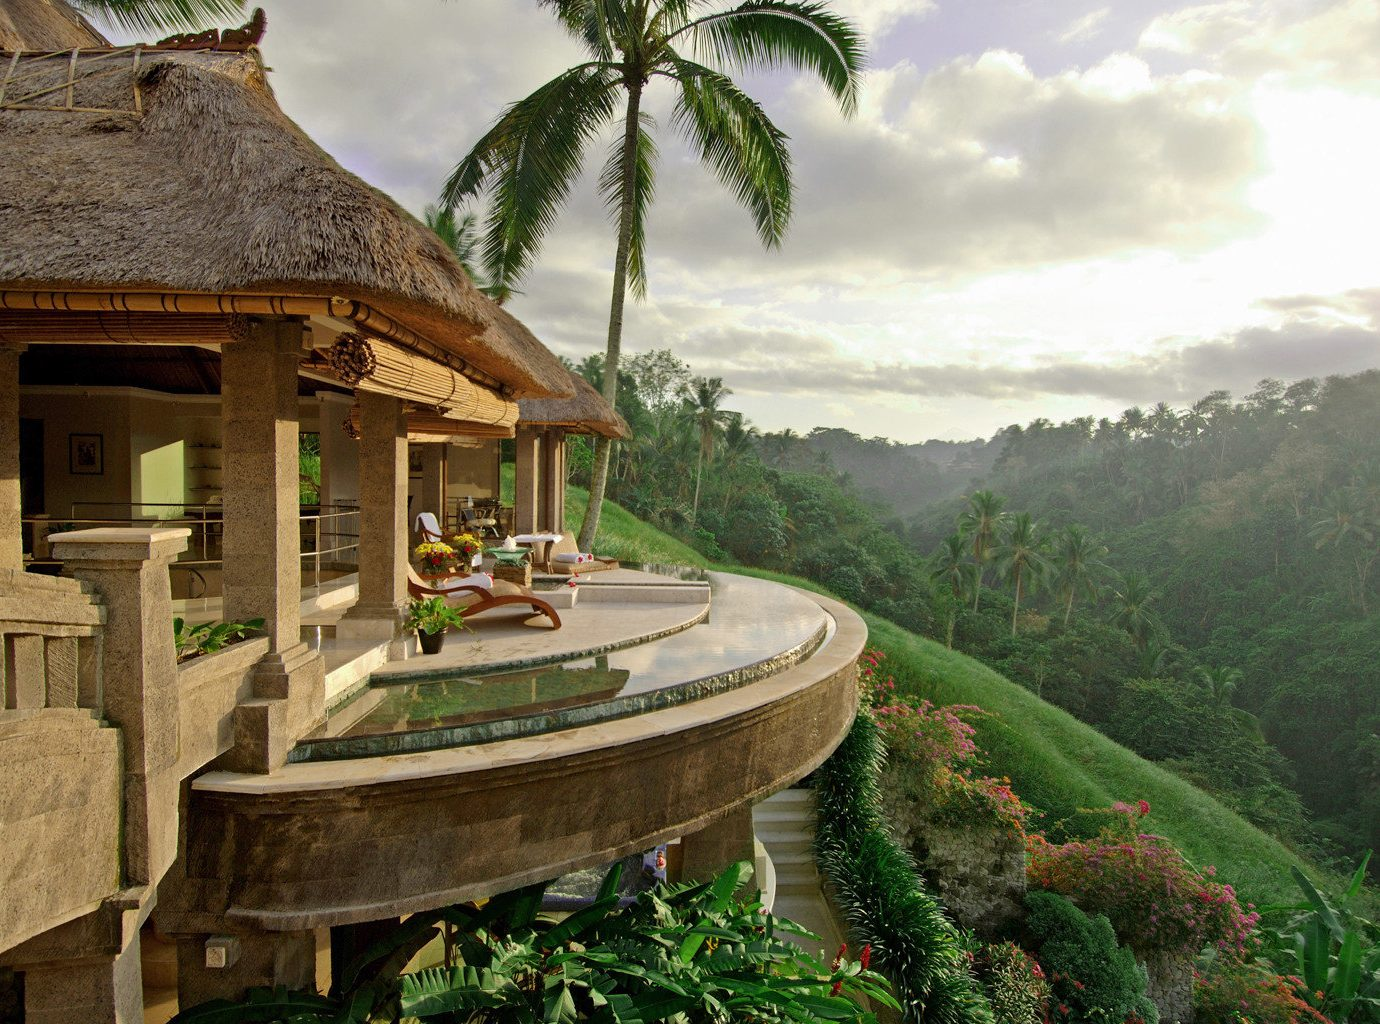 Elegant Hotels Luxury Pool Tropical outdoor estate vacation Resort Jungle mansion stone